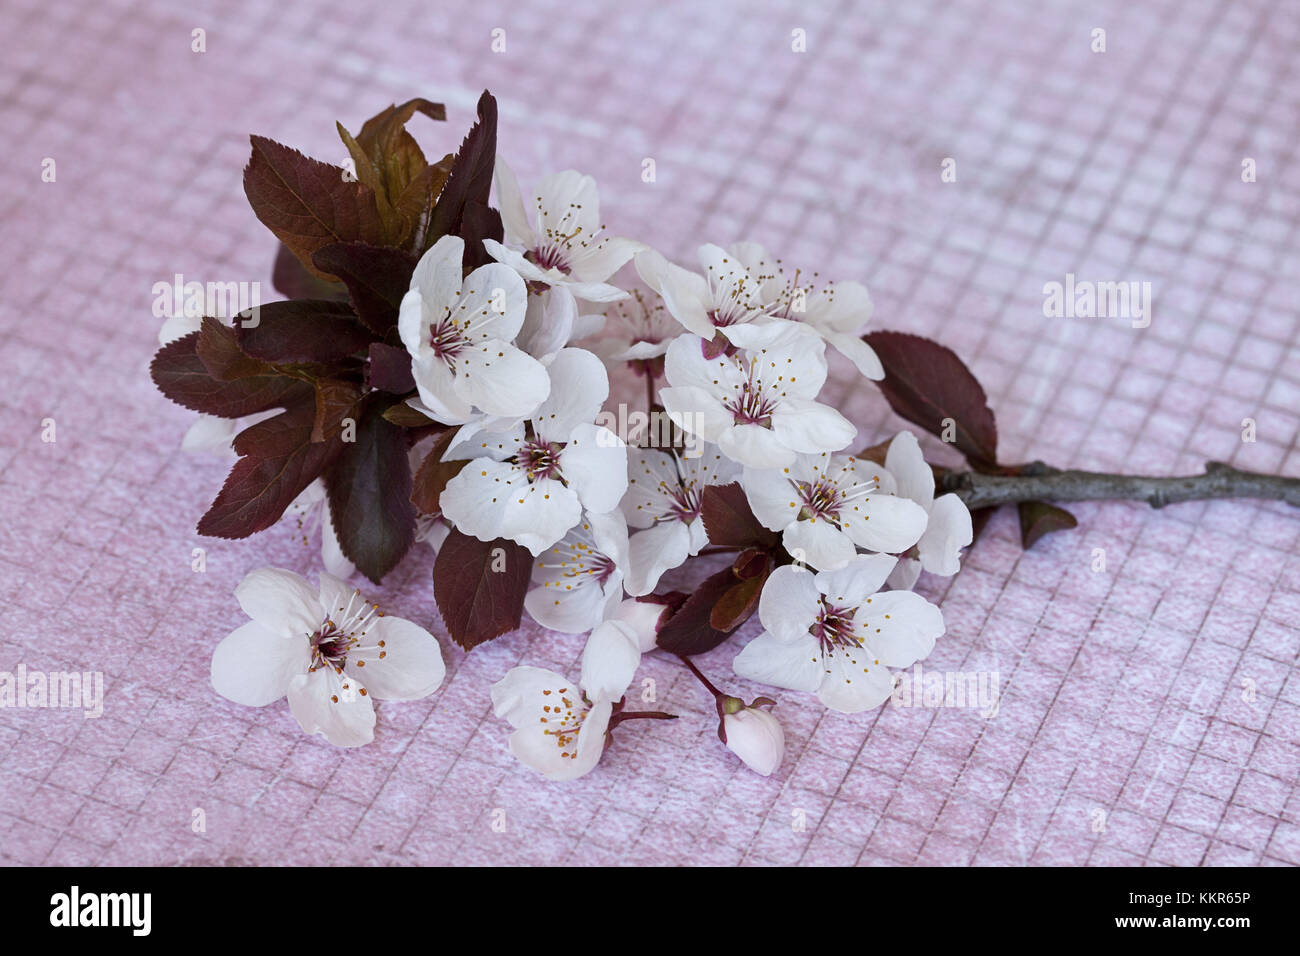 Branch With Cherry Flowers On Pink Underground Close Up Still Life